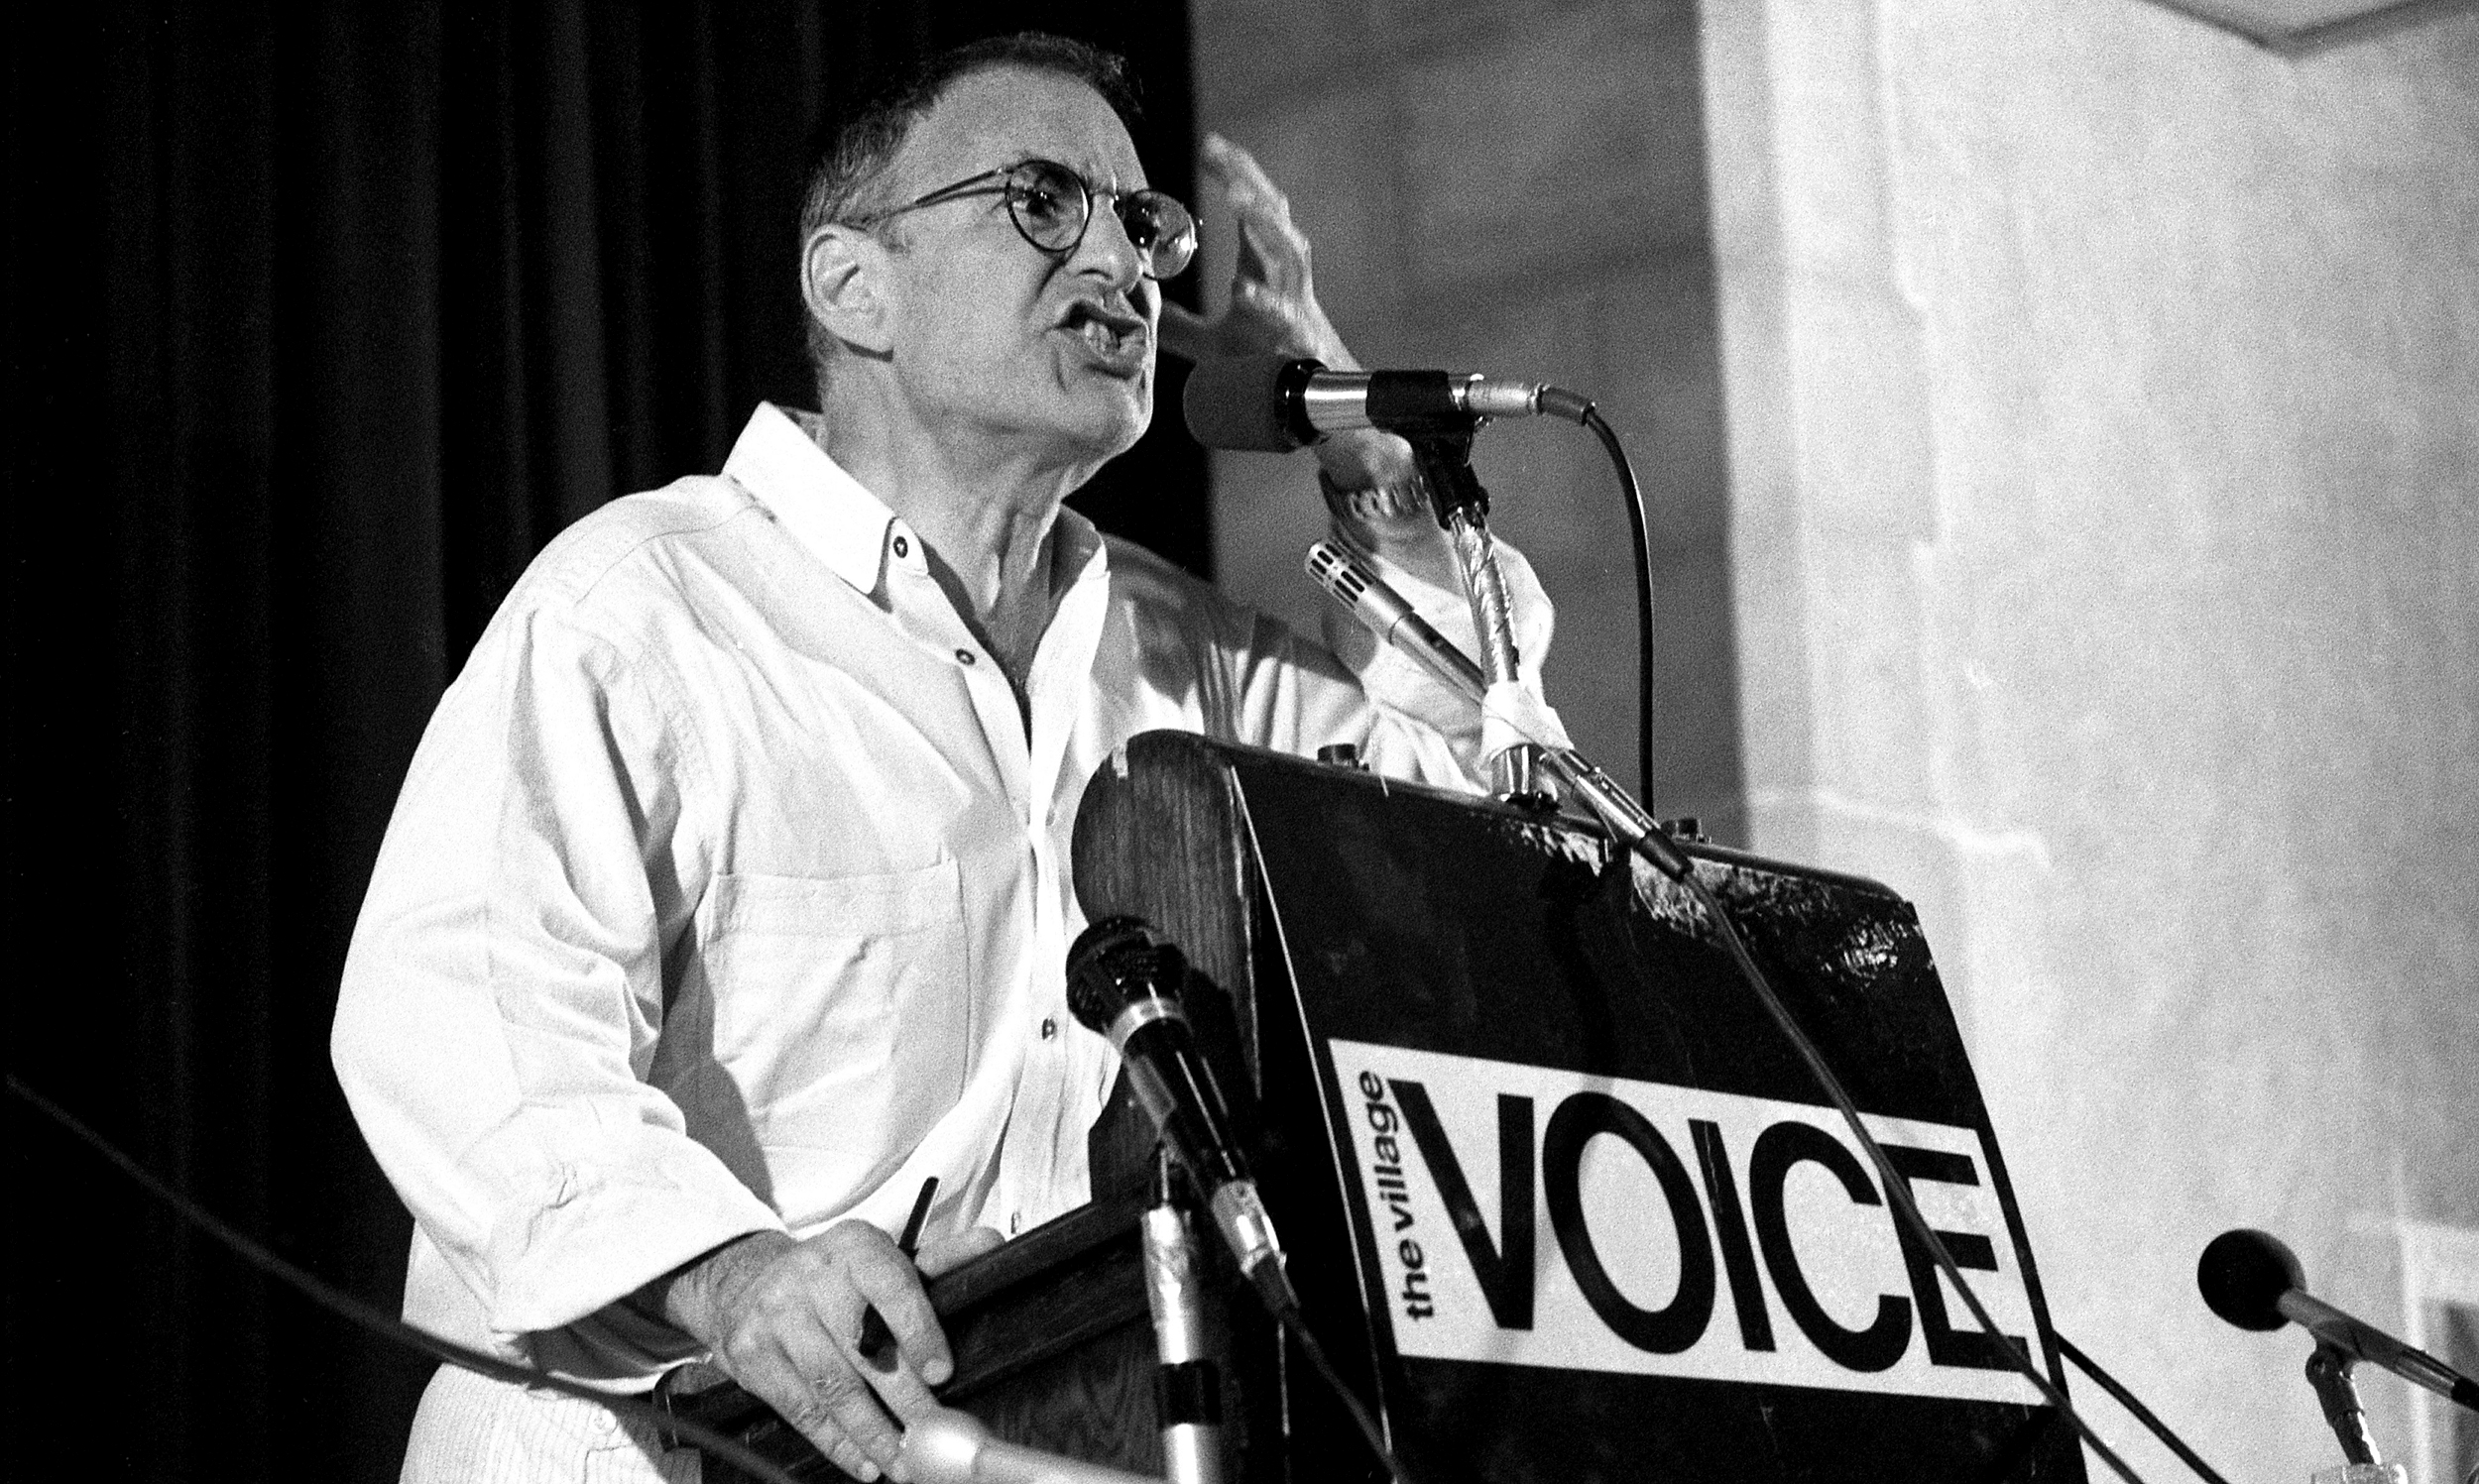 NEW YORK - JUNE 6: Larry Kramer at Village Voice AIDS conference on June 6, 1987 in New York City, New York. (Photo by Catherine McGann/Getty Images)